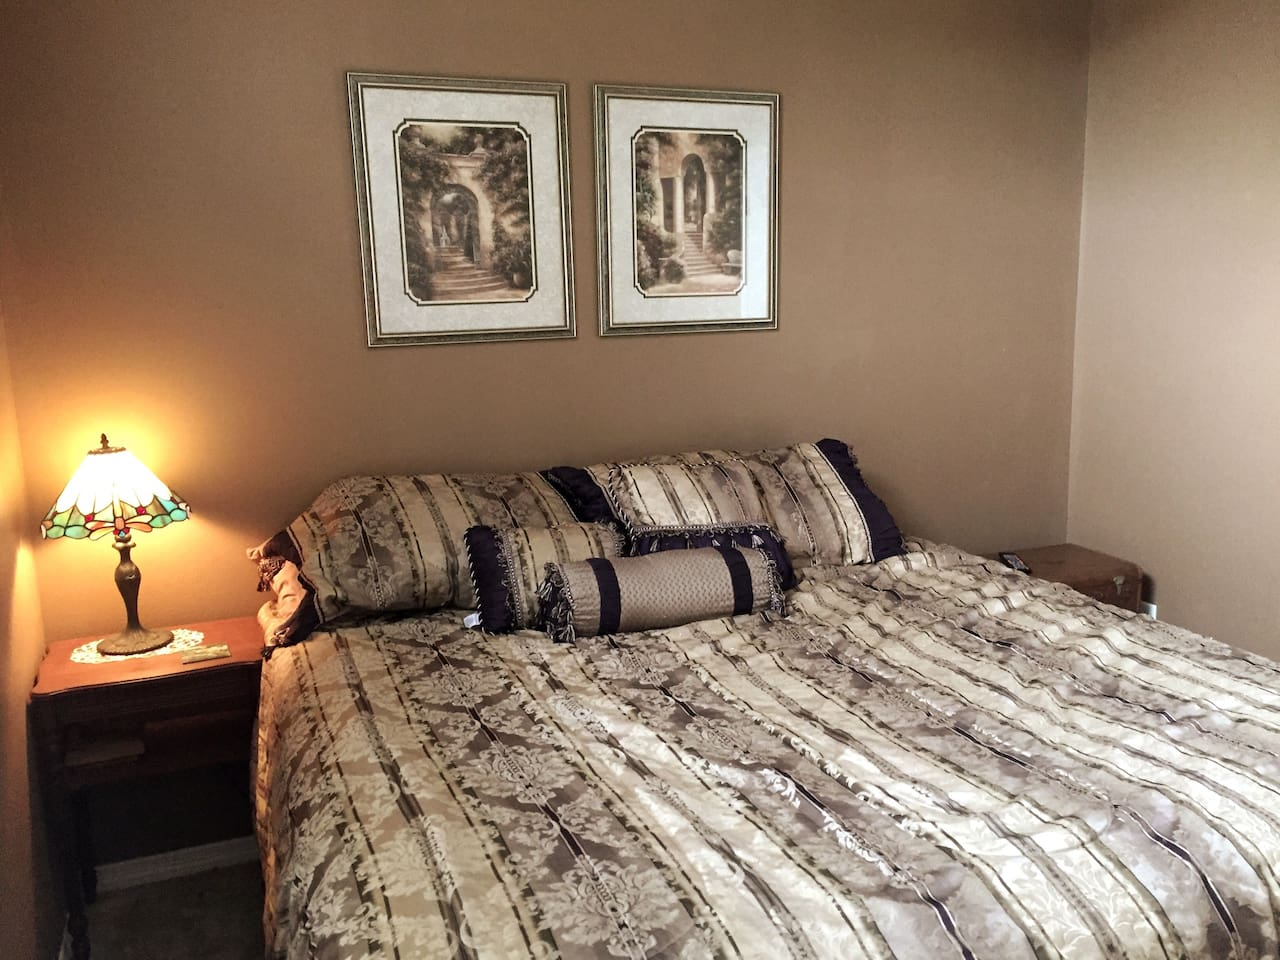 Your room with king-sized, pillow top bed.  The room has a 5-blade ceiling fan overhead, a large picture window, and room darkening curtains.